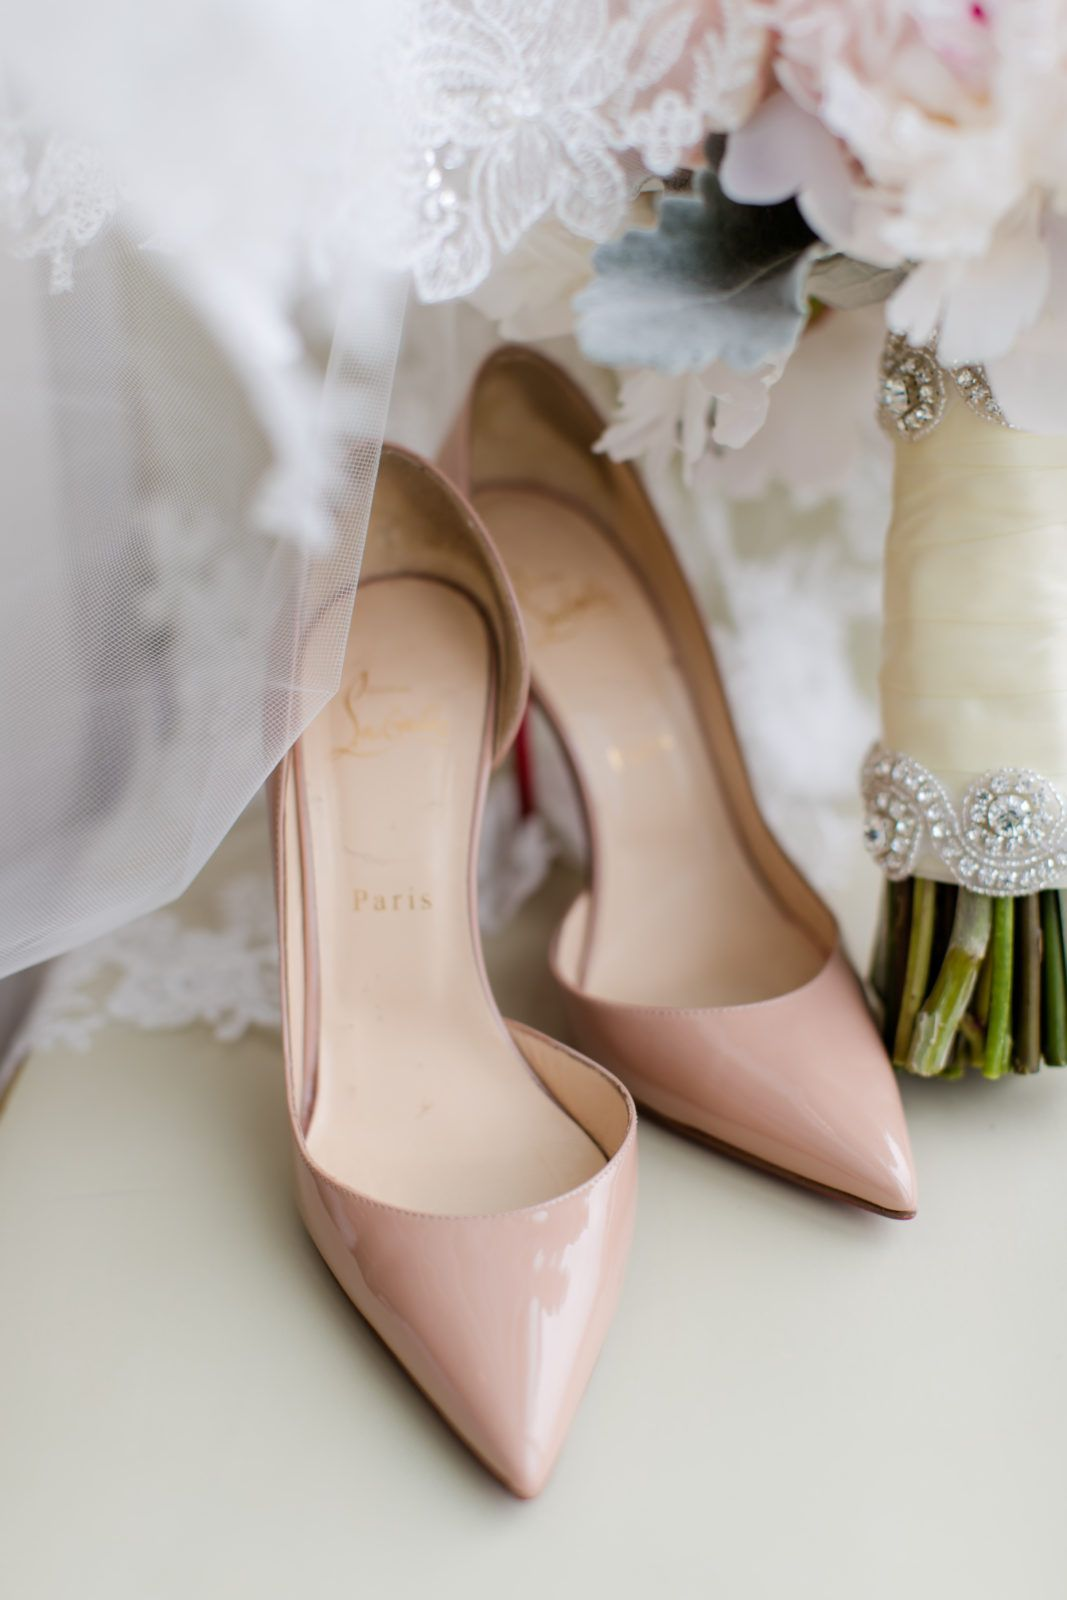 gift to groom from bride